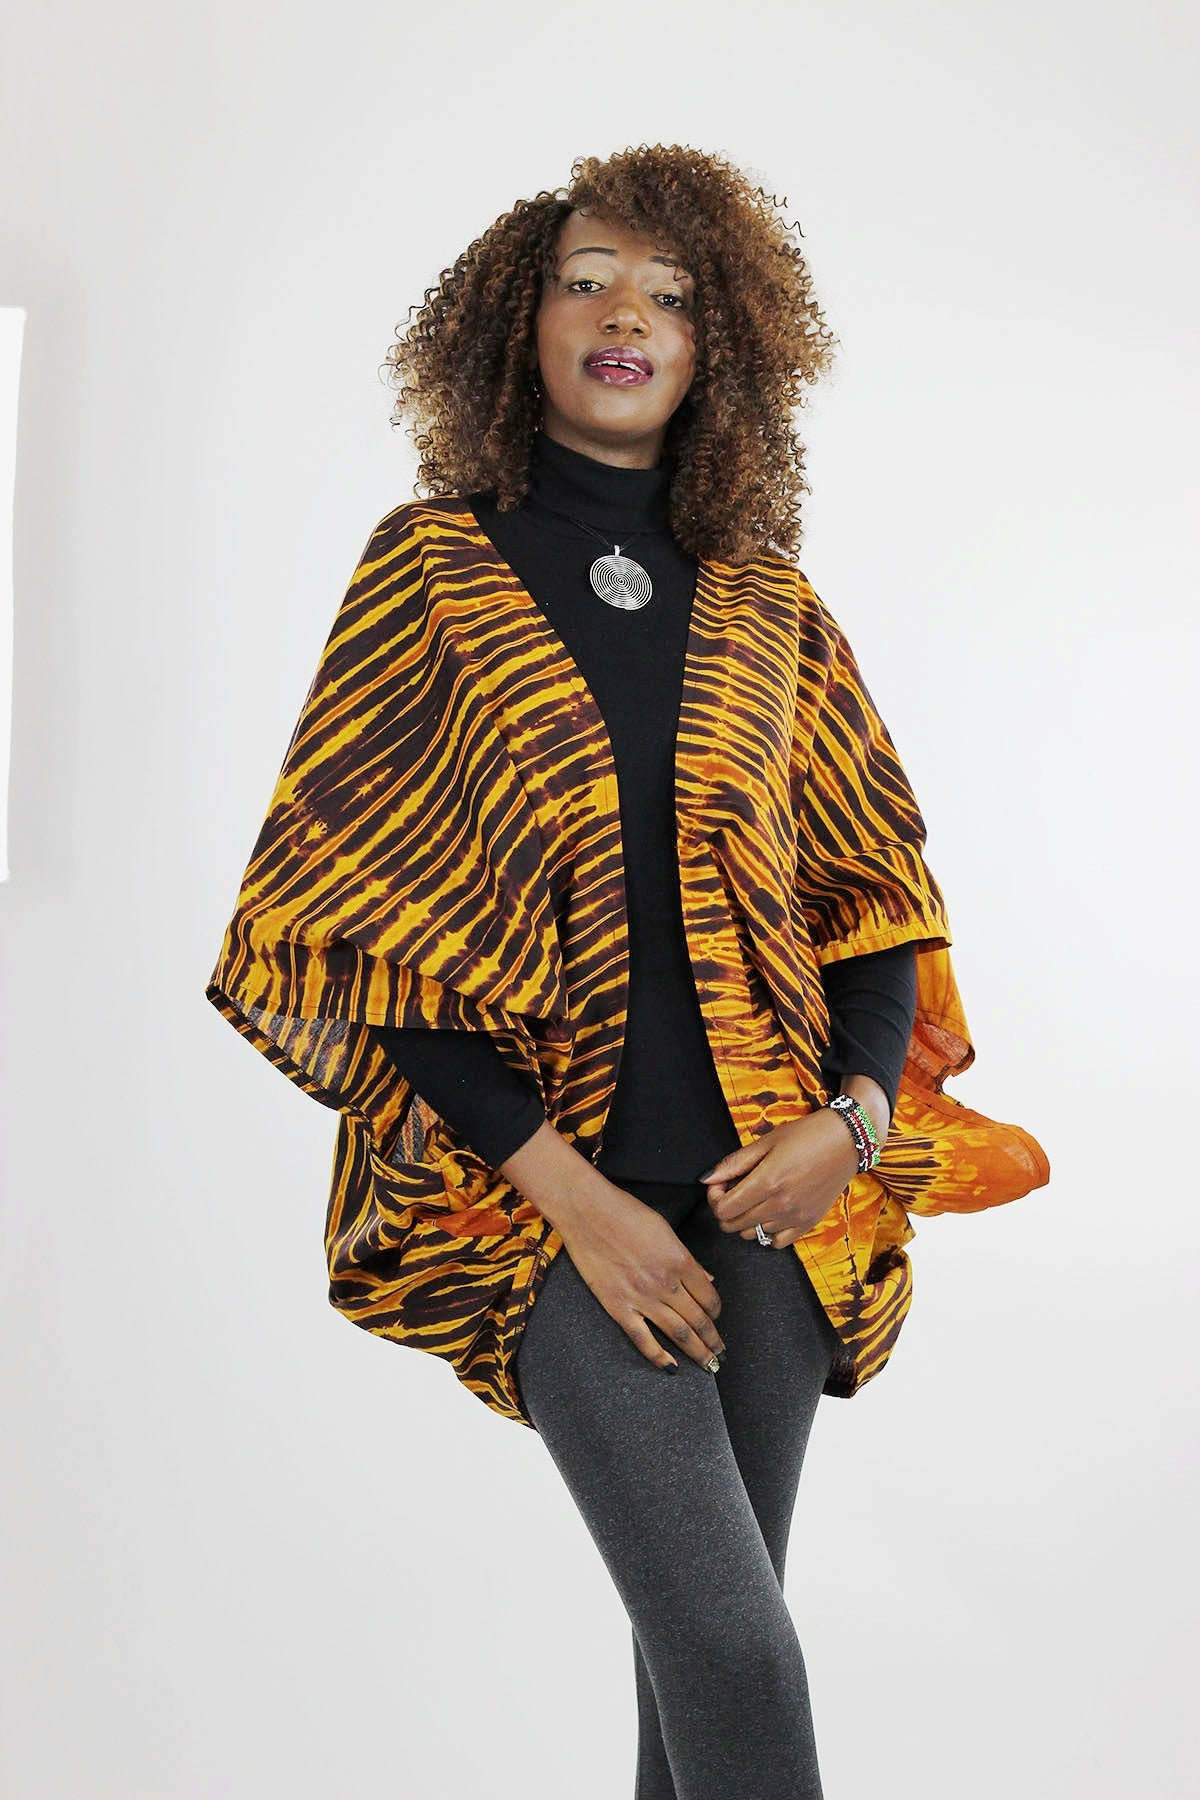 African Batik Boho Cape - Brown/Gold/Tie Dye